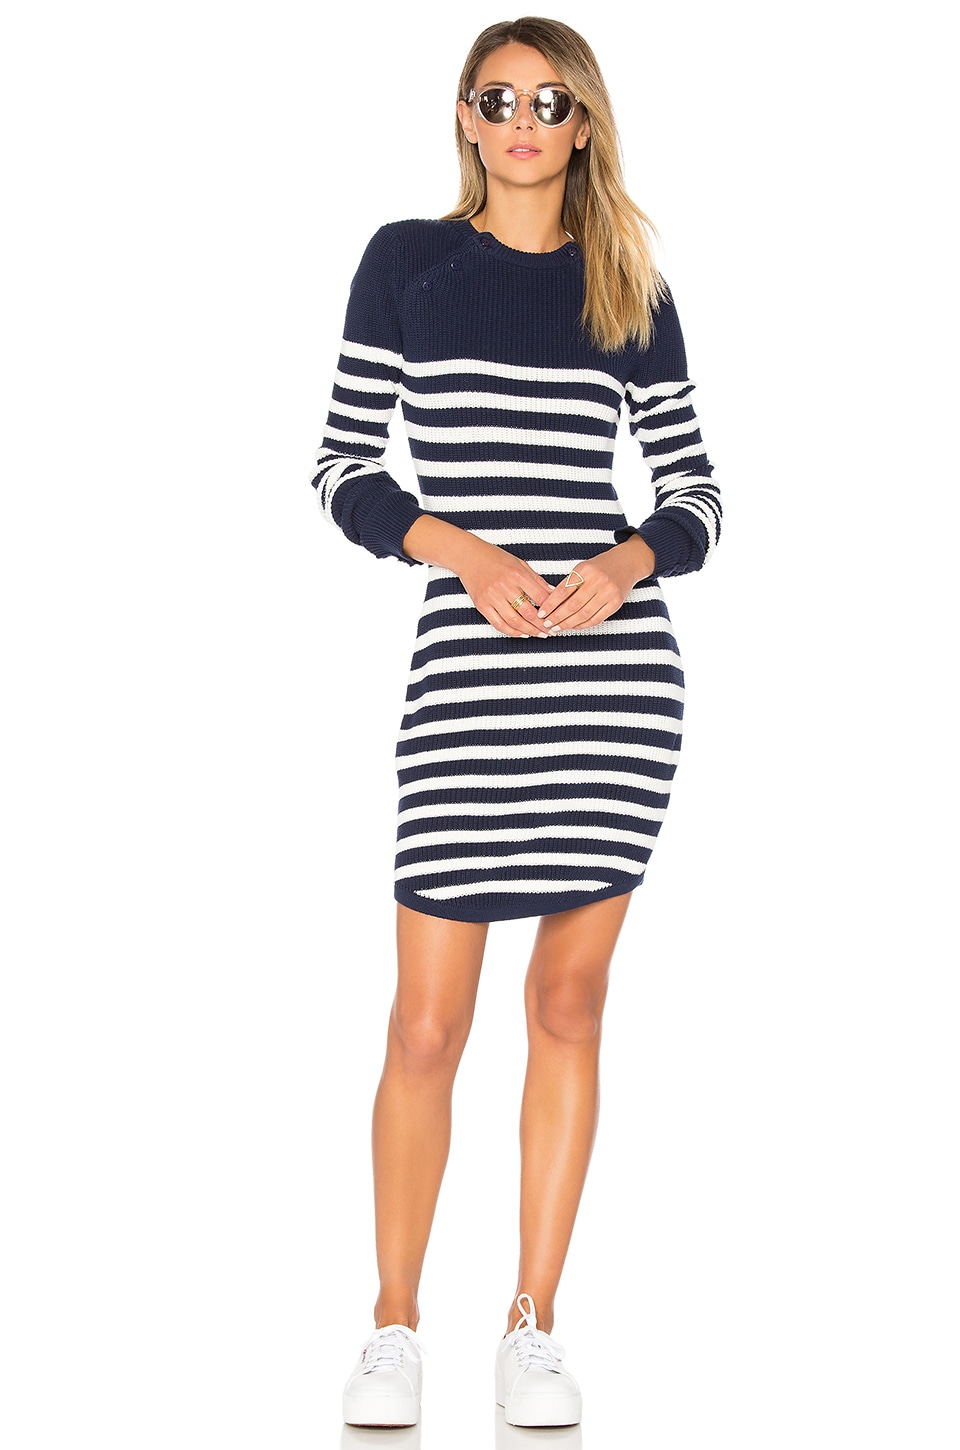 Lovers + Friends Coastline Dress in Navy Stripe